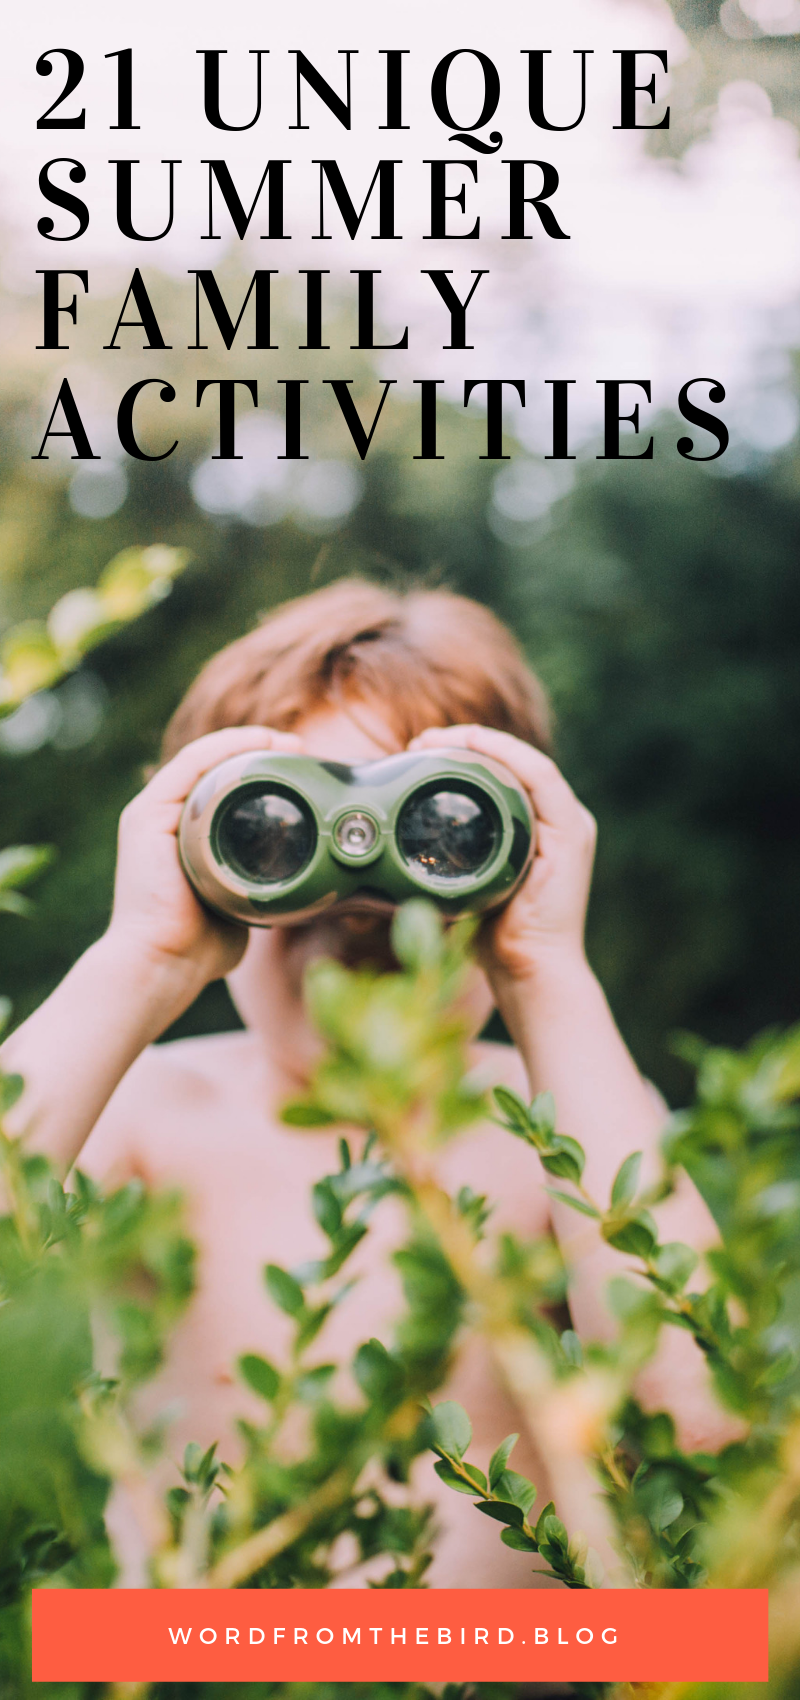 Check out these incredible and fun activities you can do with your family this summer that are outdoor, creative, and fun for the whole family. #family #fun #unique #list #familytime #kids #activities #summer #thingstodo